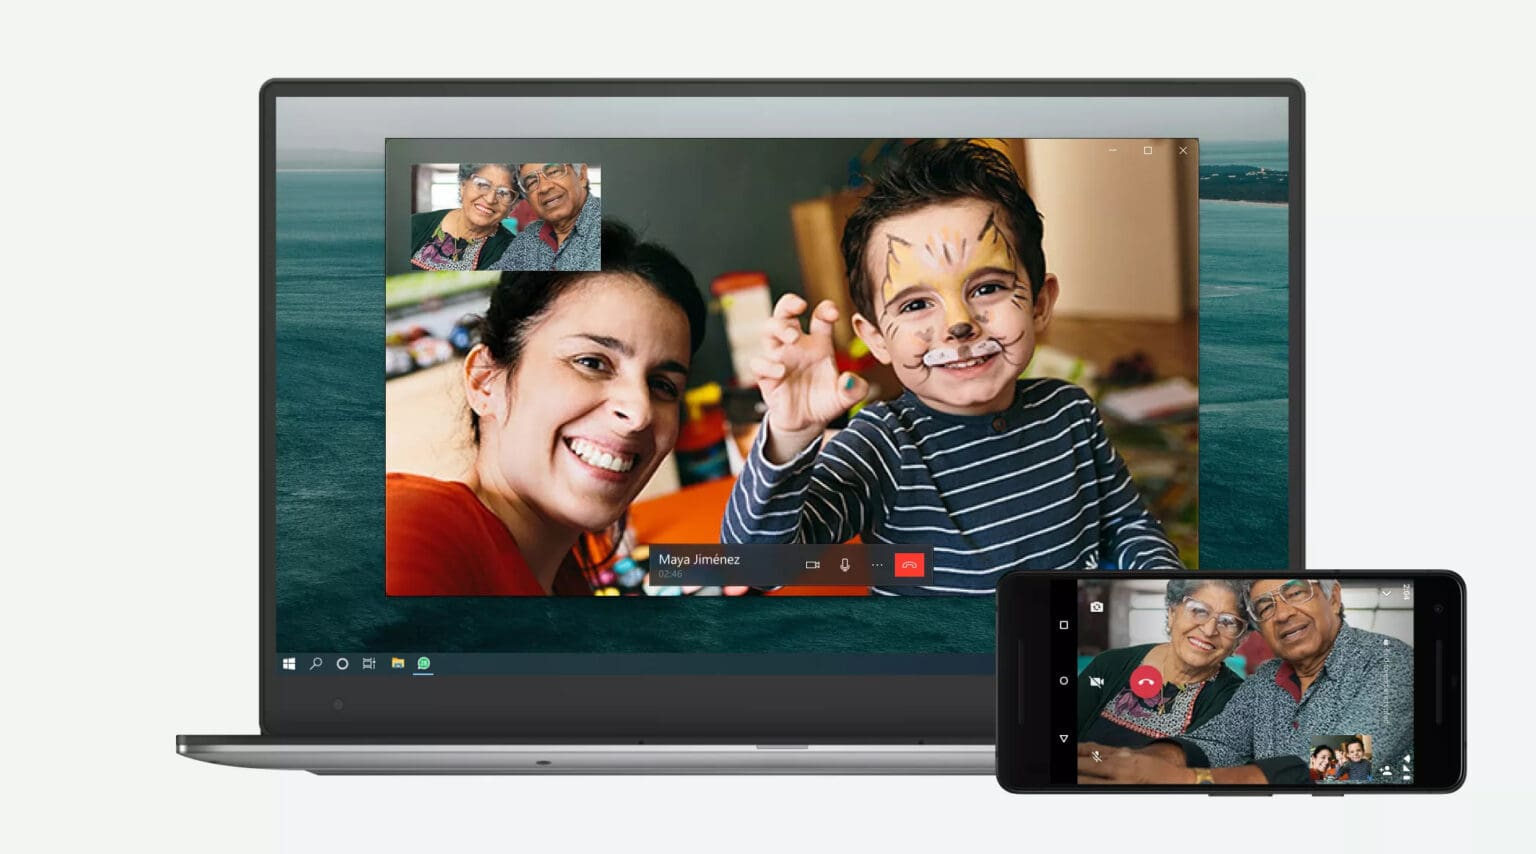 WhatsApp voice and video calling comes to desktop